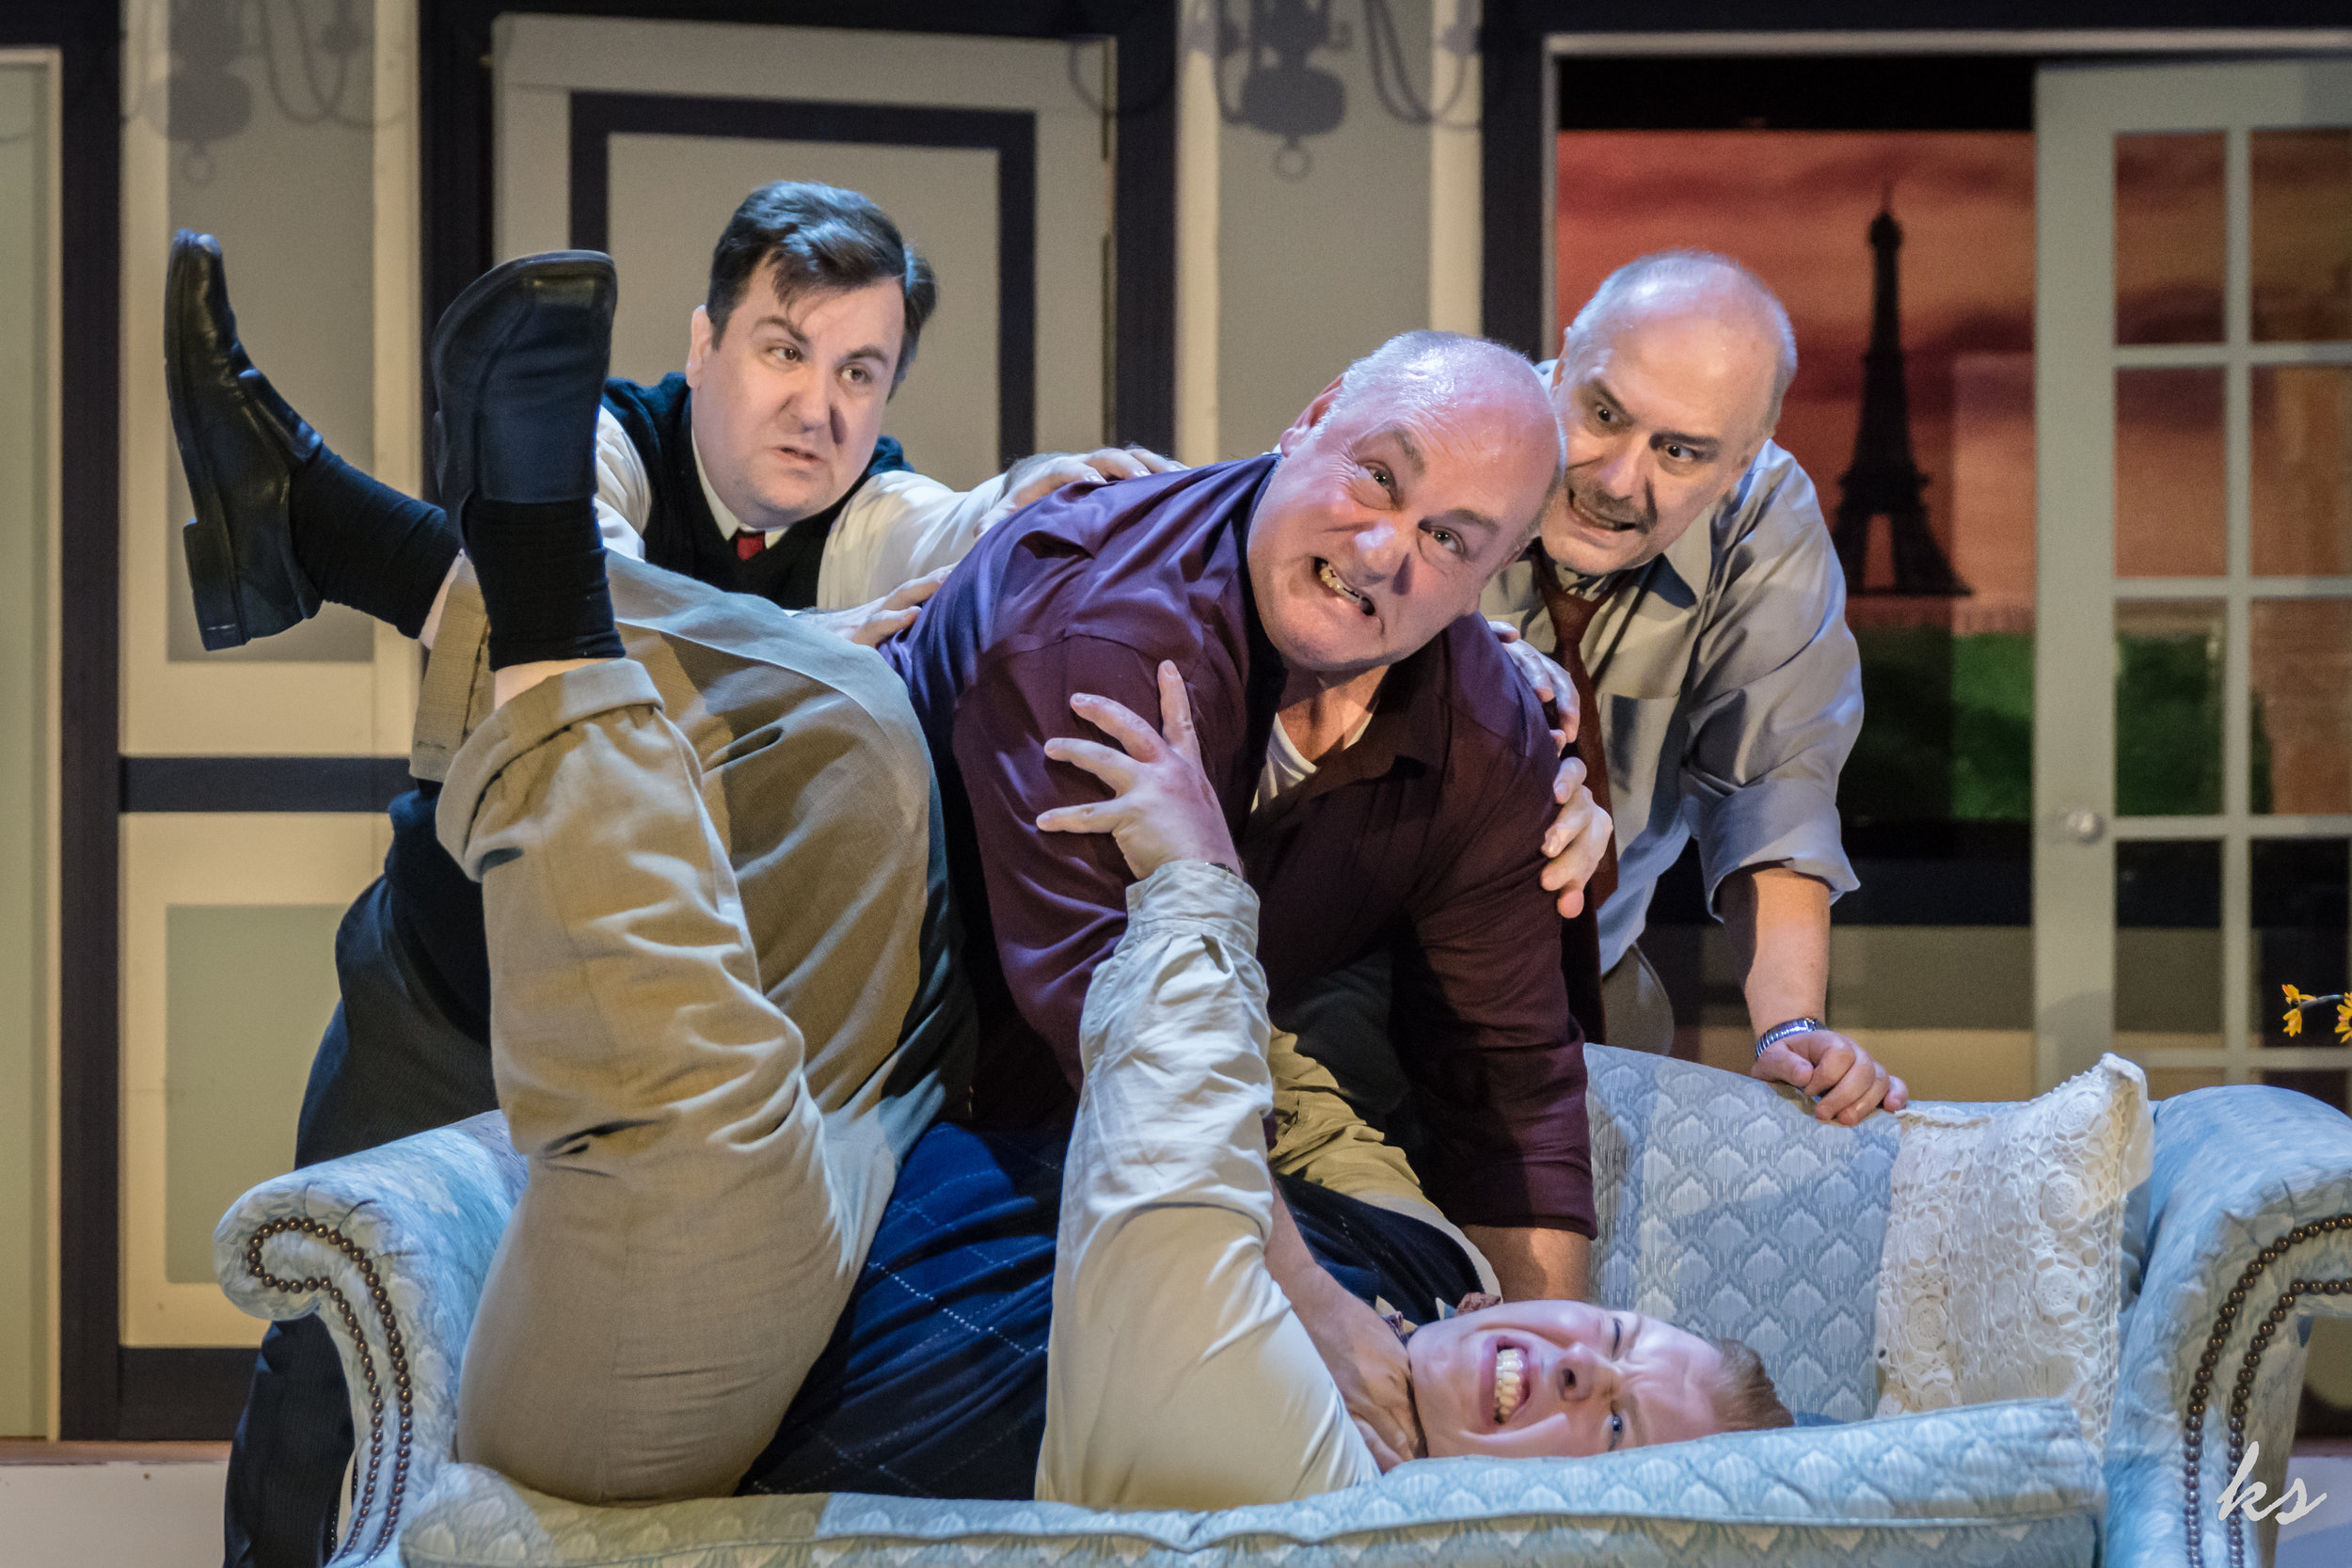 """Opera singer Tito Morelli (Bob Fuchs) tries to strangle his rival Carlo (Stefan Kent), who he thinks is having an affair with his wife, while Max (Corey Klein) and Saunders (Ralph Frattura) try to break up the fight in a scene from Sunset Playhouse's """"A Comedy of Tenors.""""  Photos by Katrina Smith"""